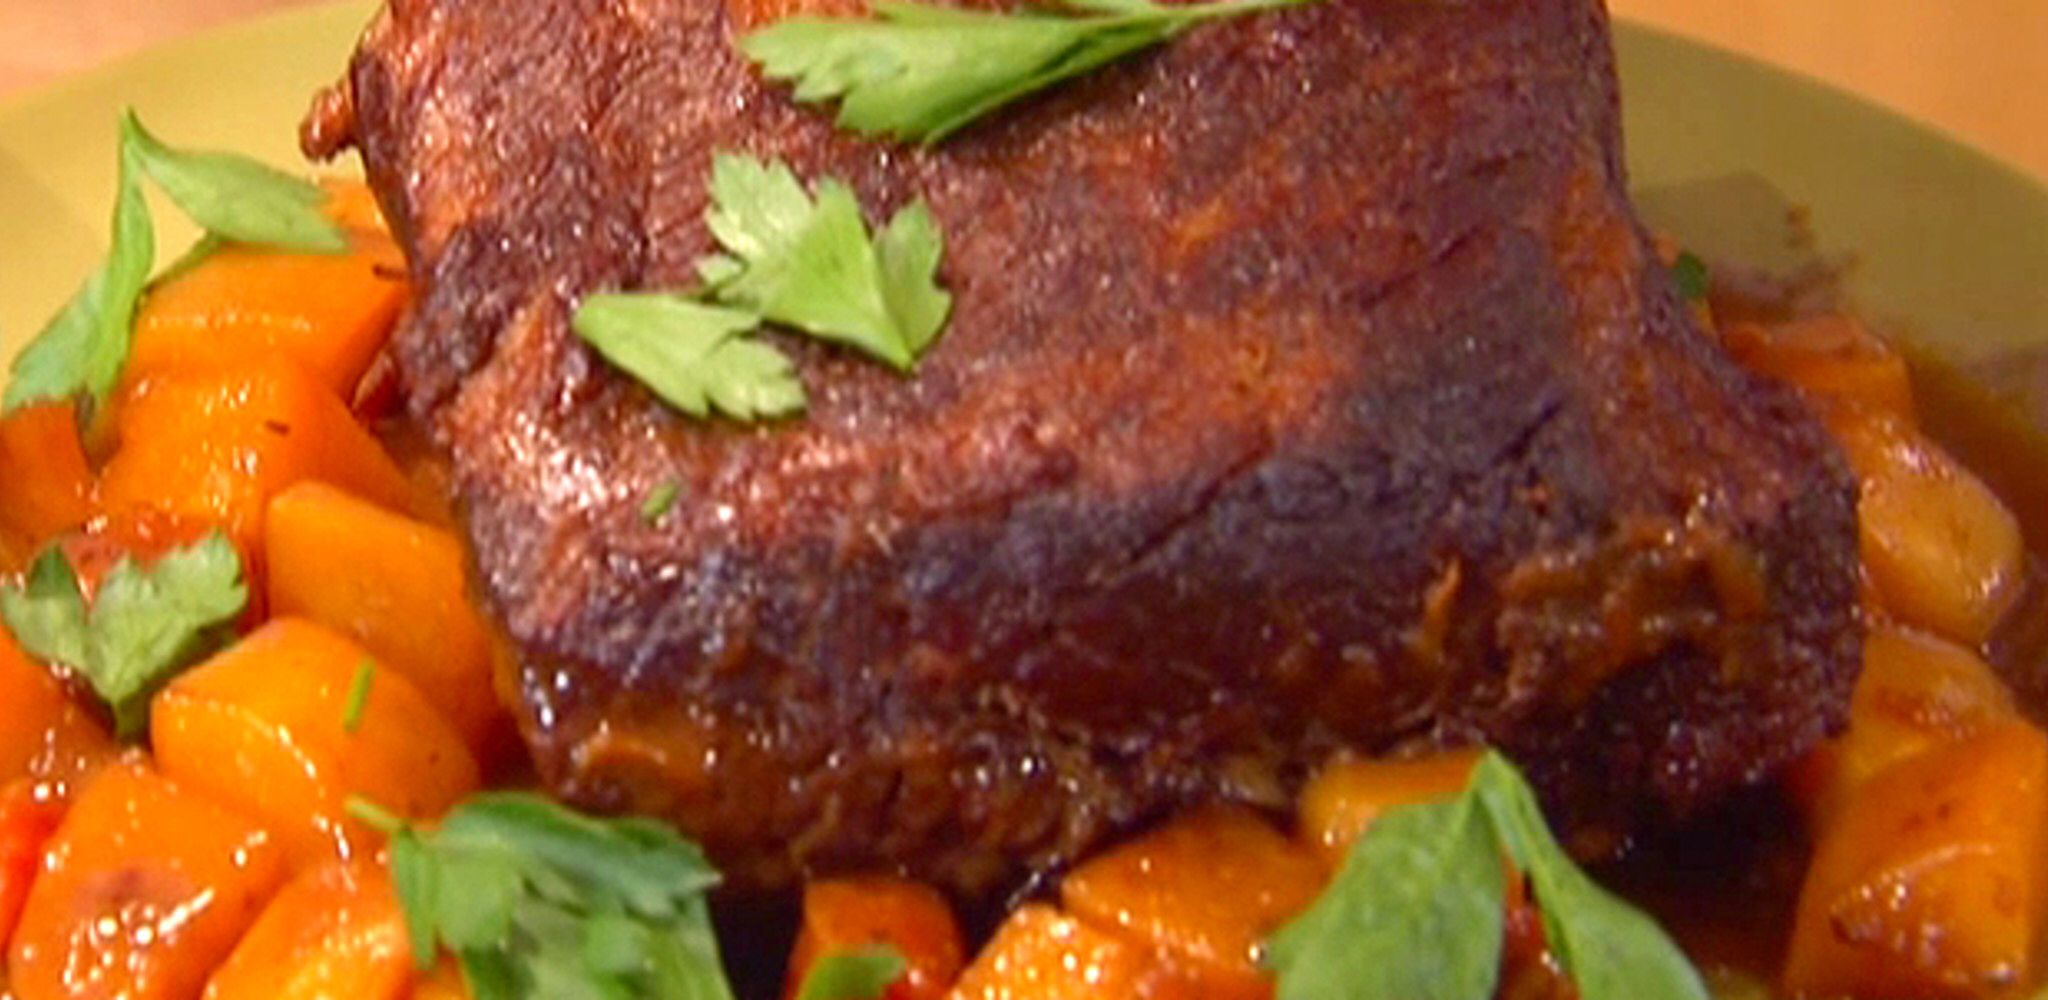 Red Wine Pot Roast With Honey And Thyme Recipe In 2020 Thyme Recipes Pot Roast Food Network Recipes